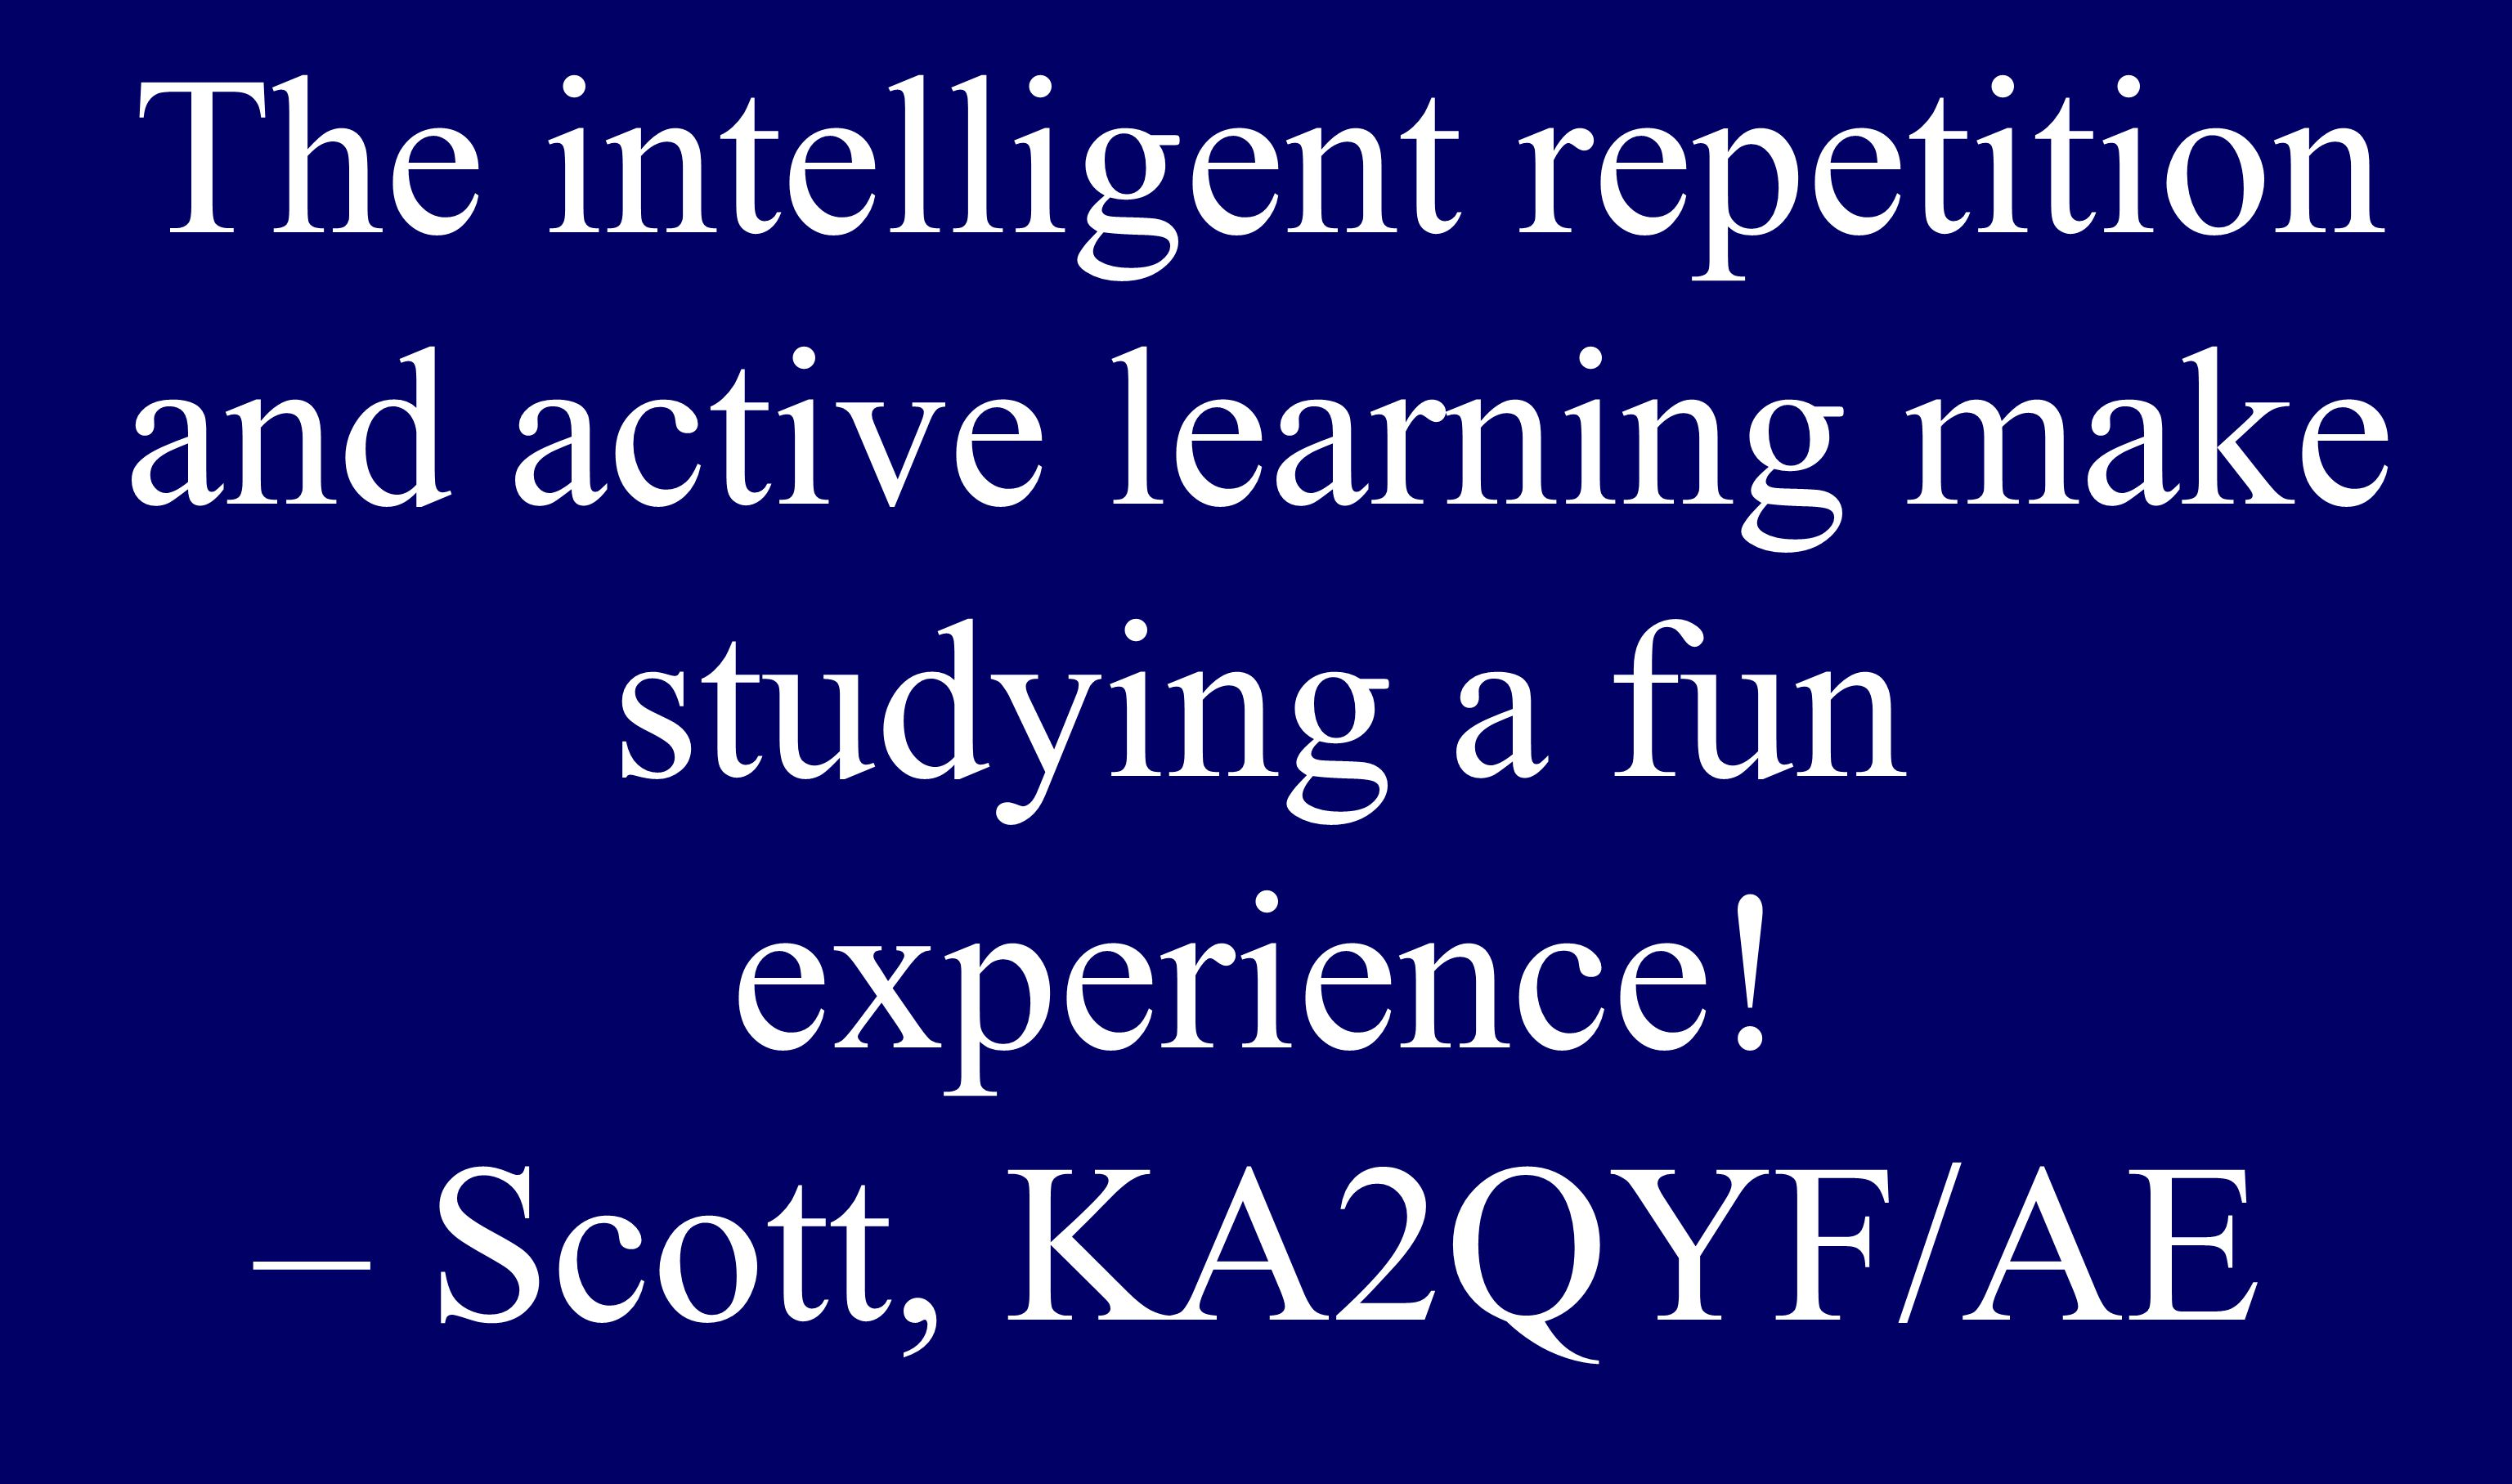 The intelligent repetition and active learning make studying a fun experience! – Scott, KA2QYF/AE